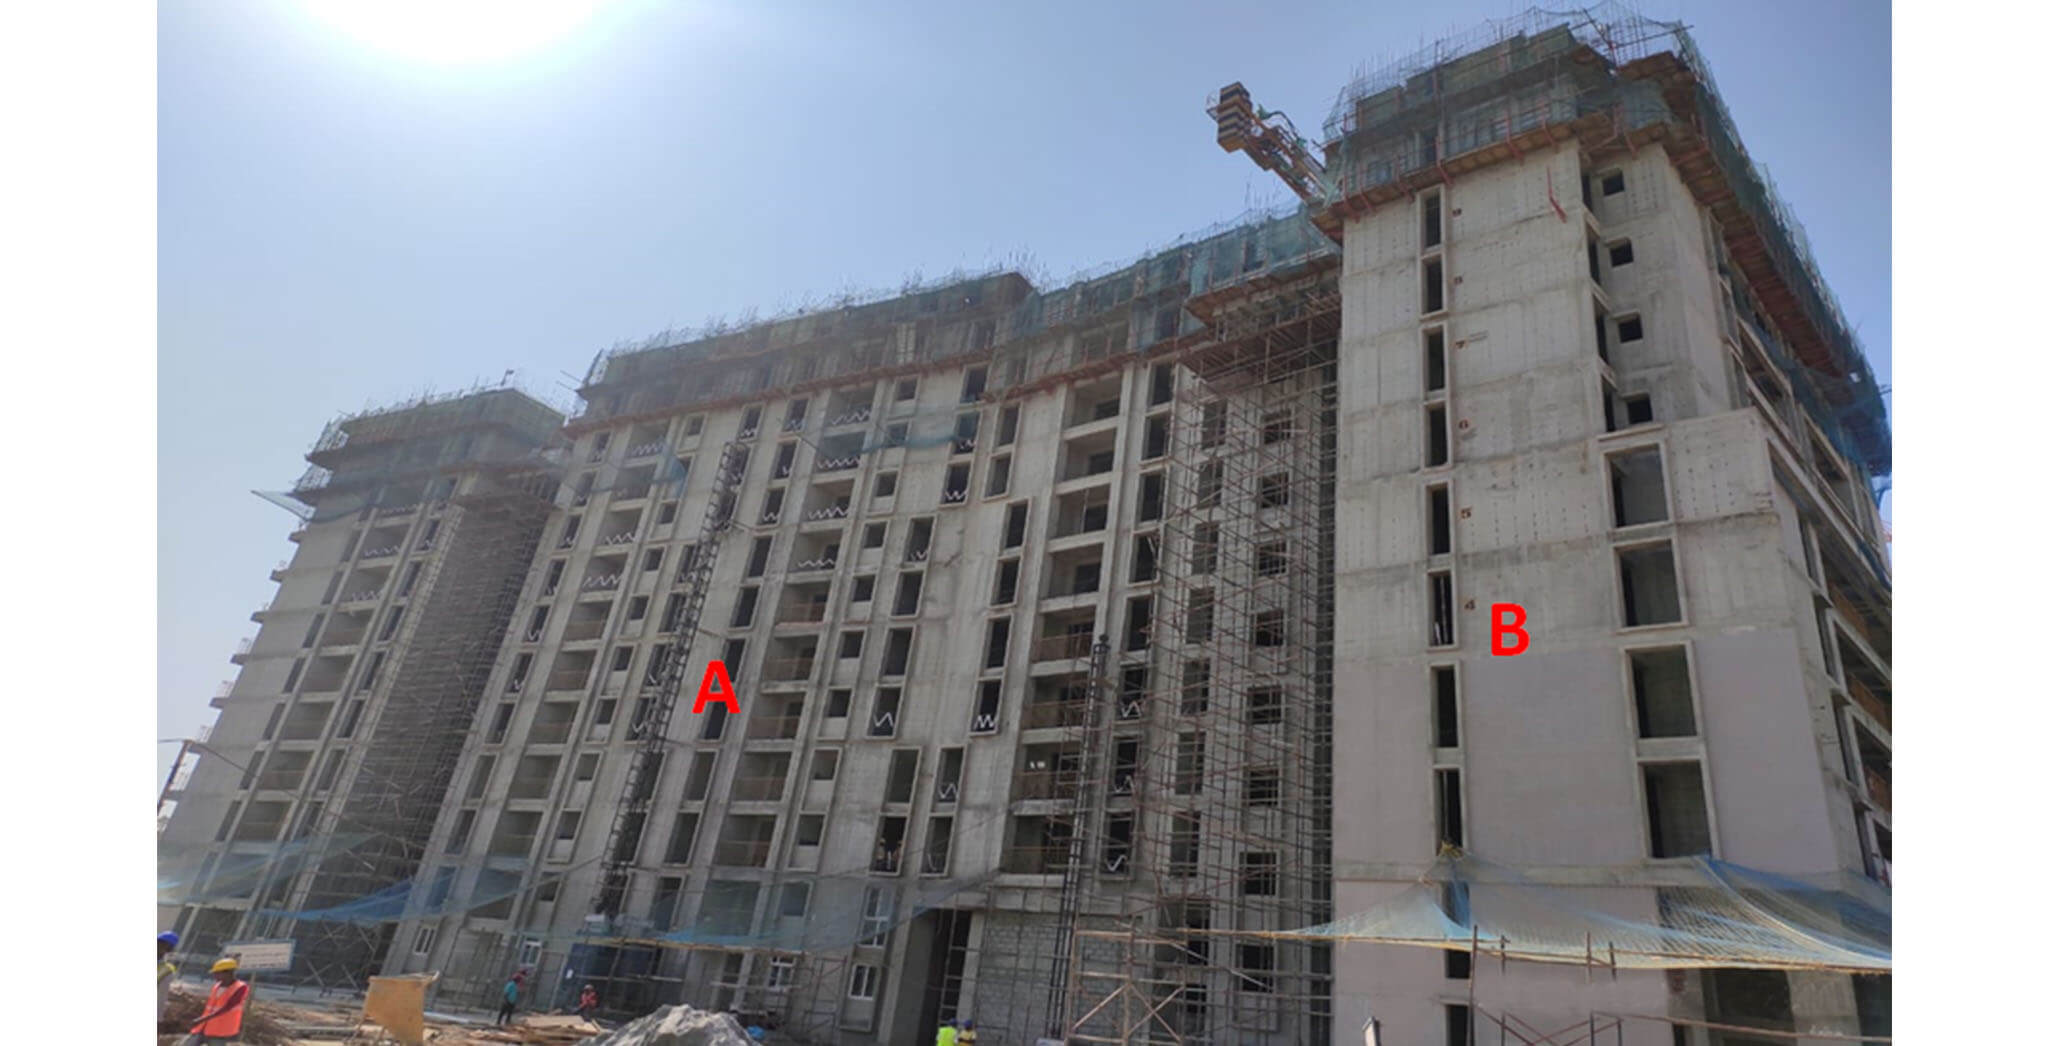 Sep 2020 - Serene: Tower A—12th floor slab structure work completed; Tower B—11th floor slab structure work completed